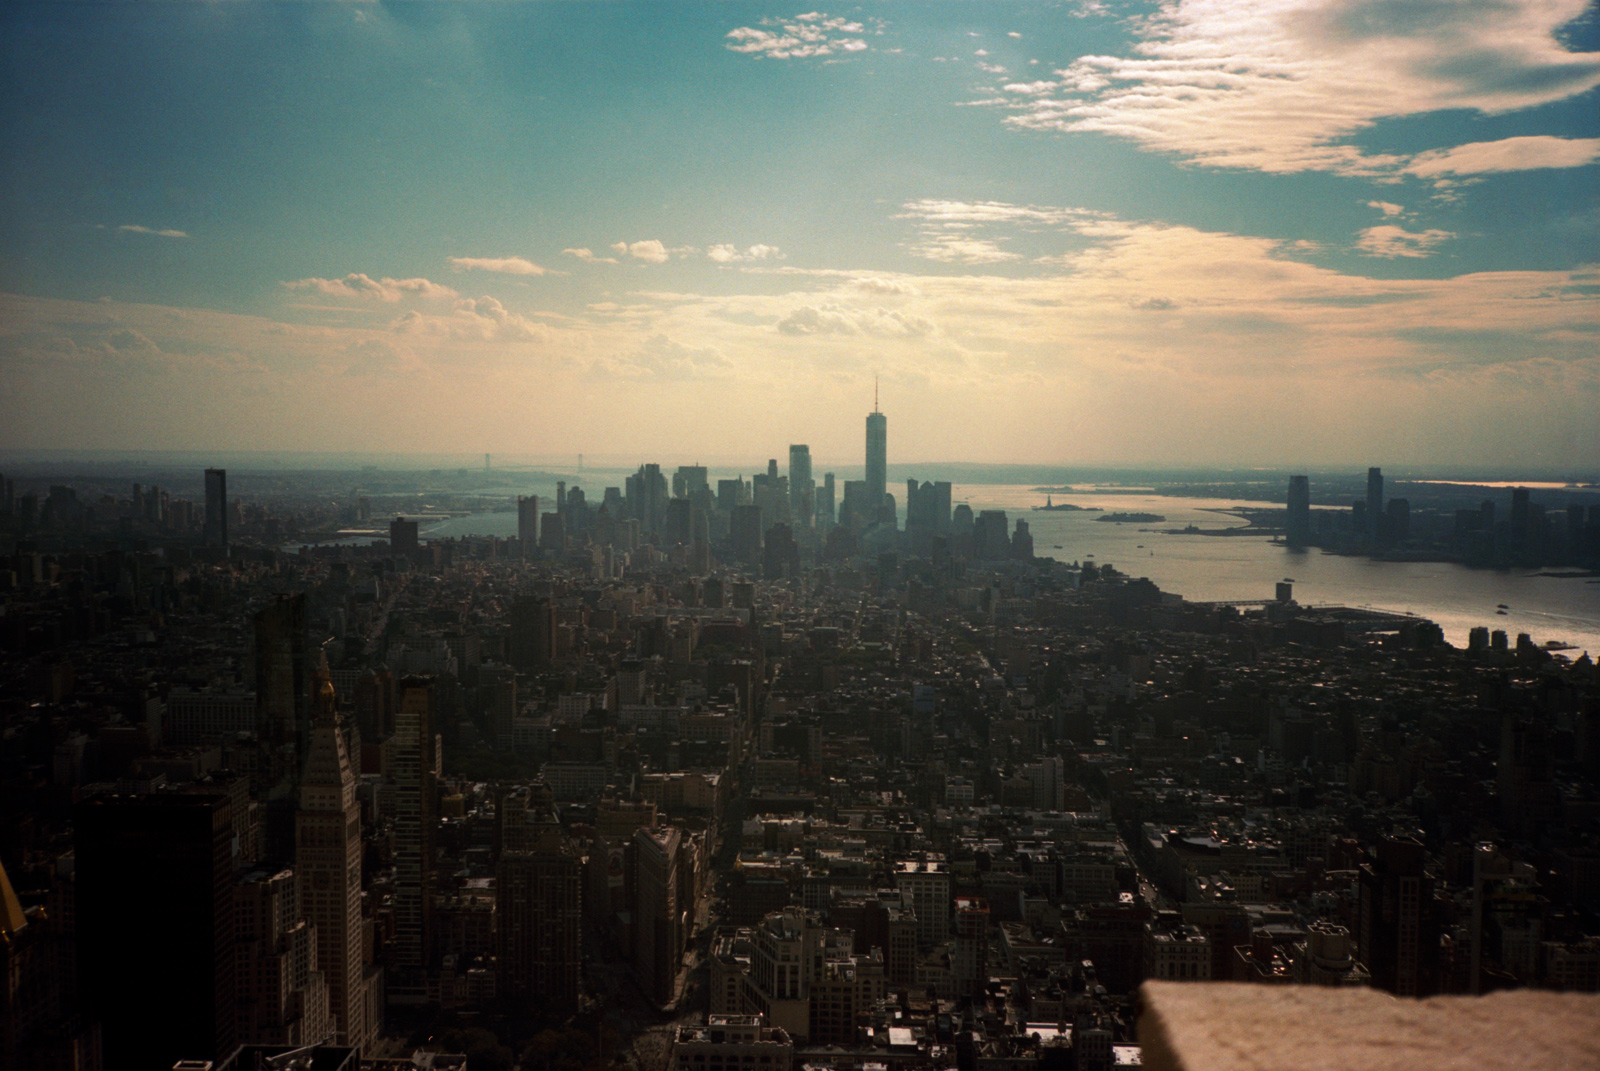 Empire State Building Skyline, Lonely New York Series By Ioannis Koussertari.